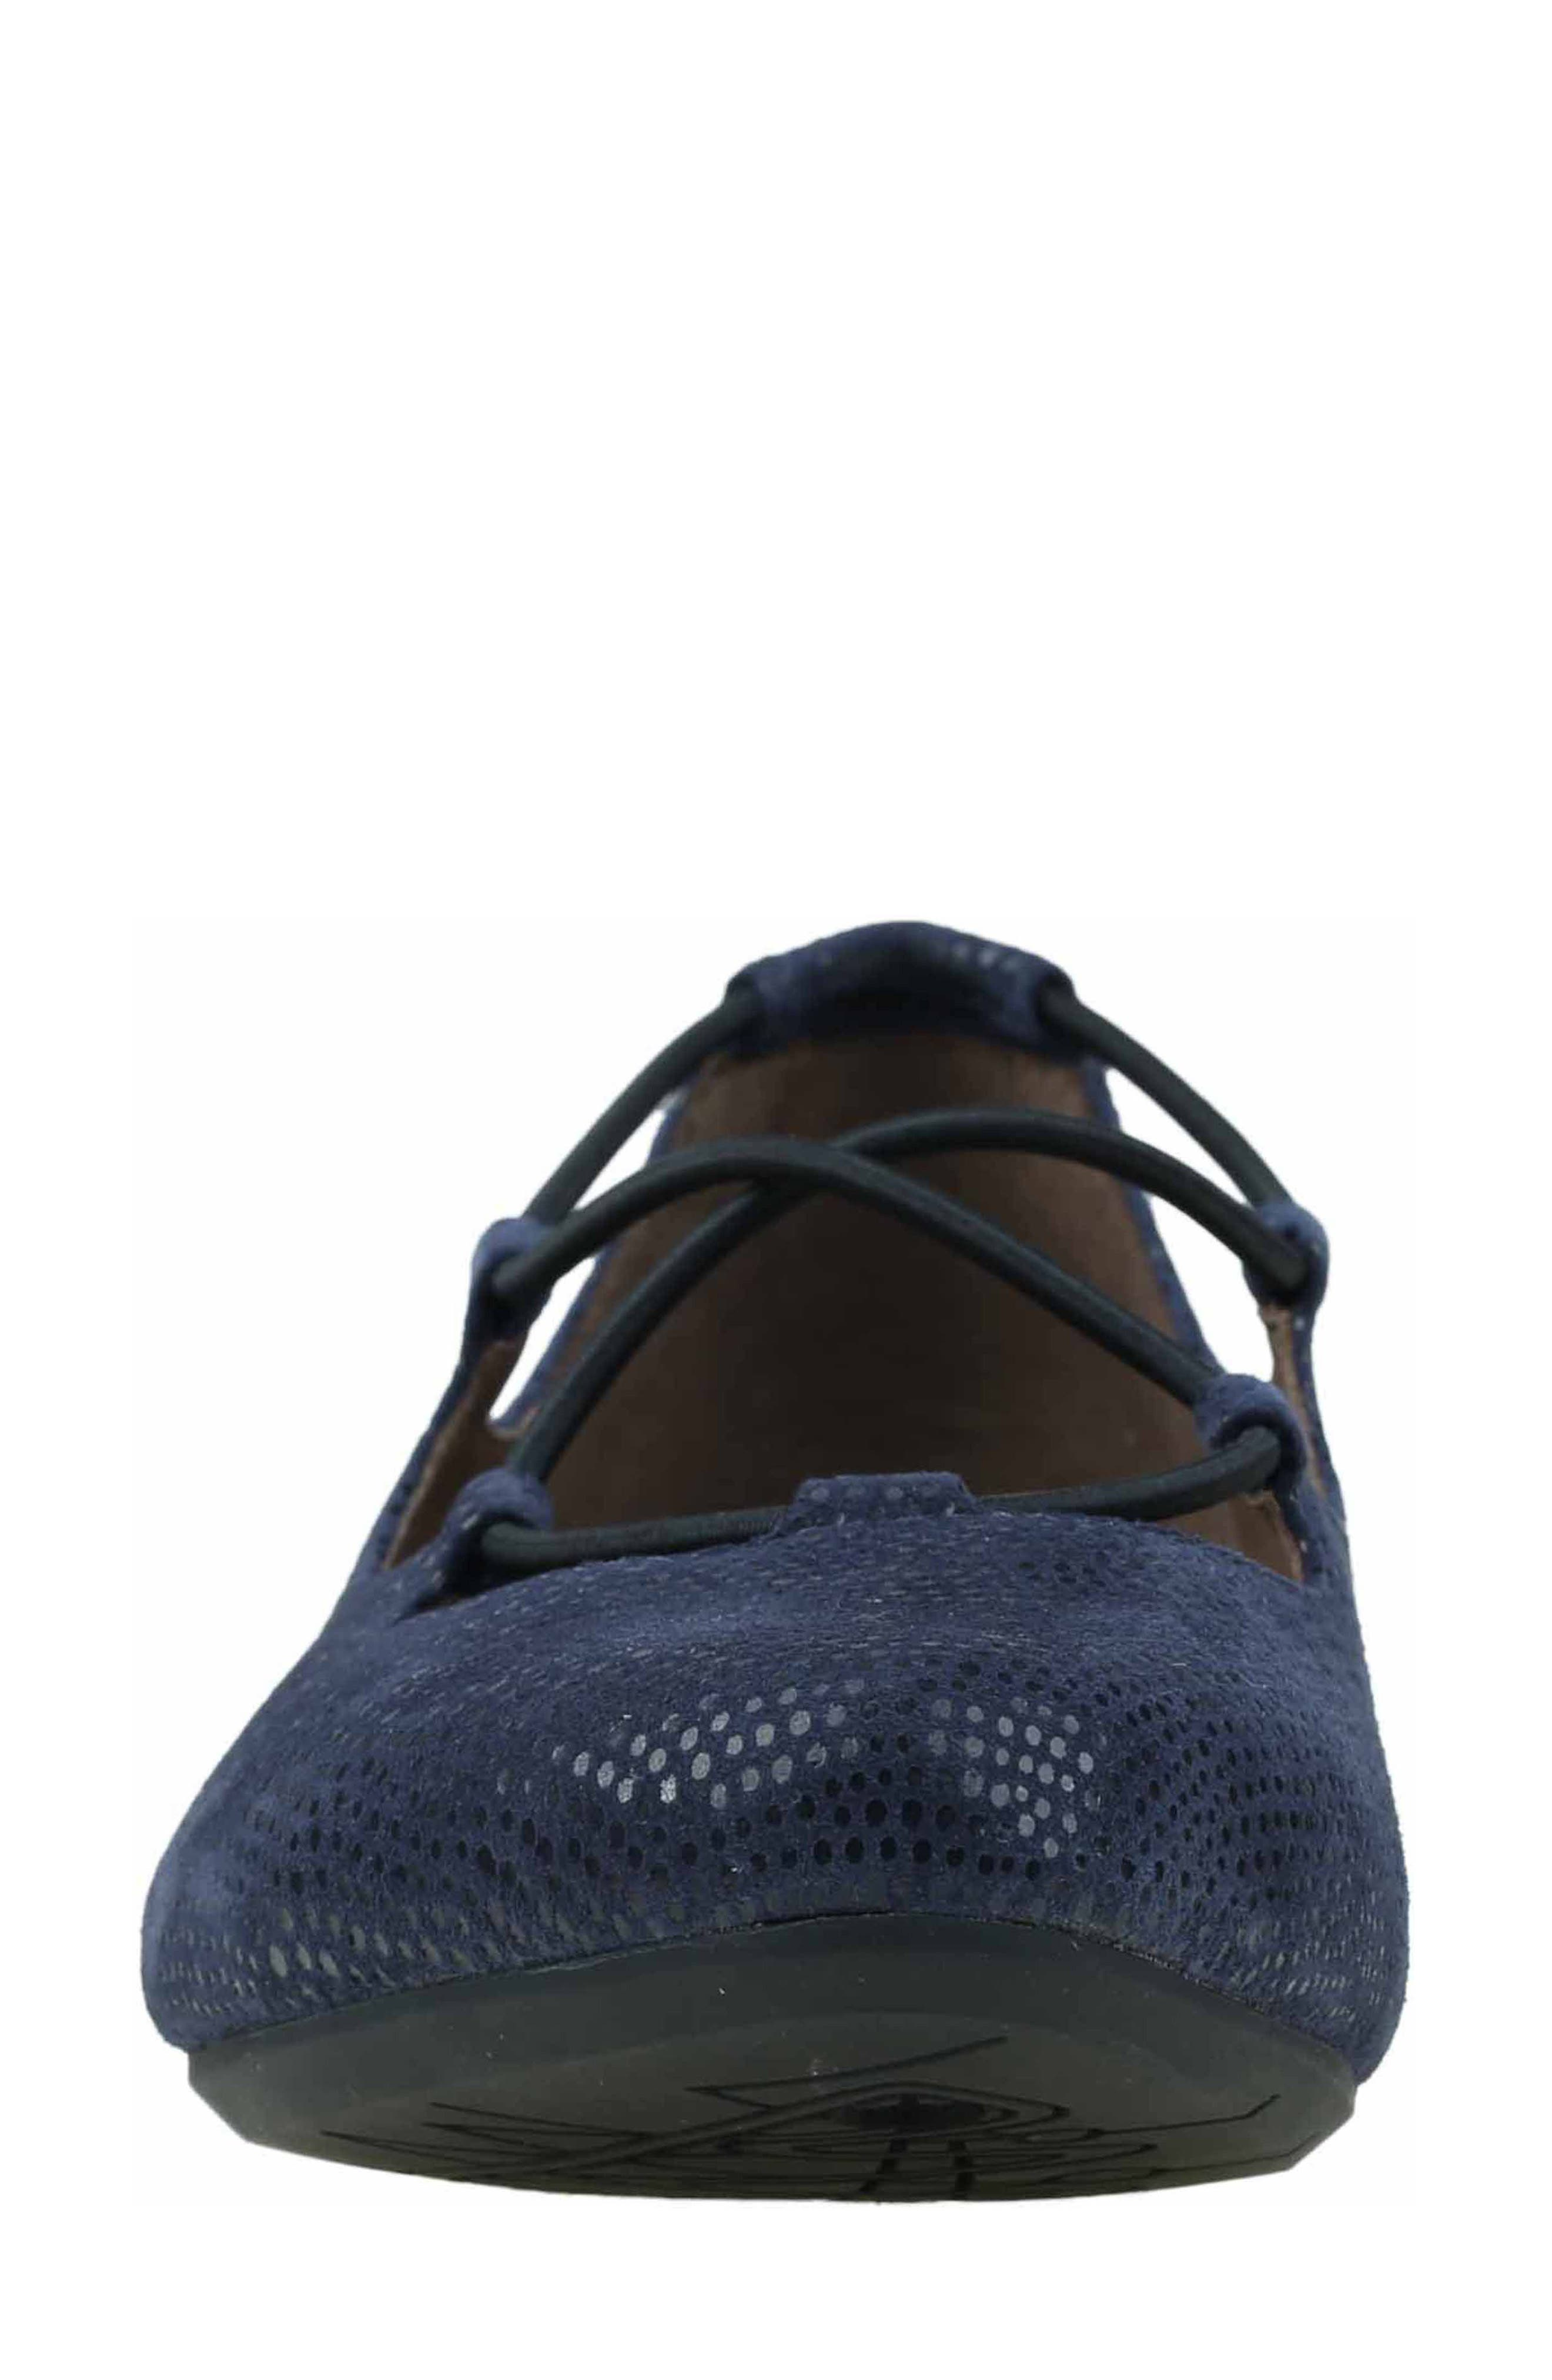 'Essen' Ghillie Flat,                             Alternate thumbnail 5, color,                             Navy Printed Suede